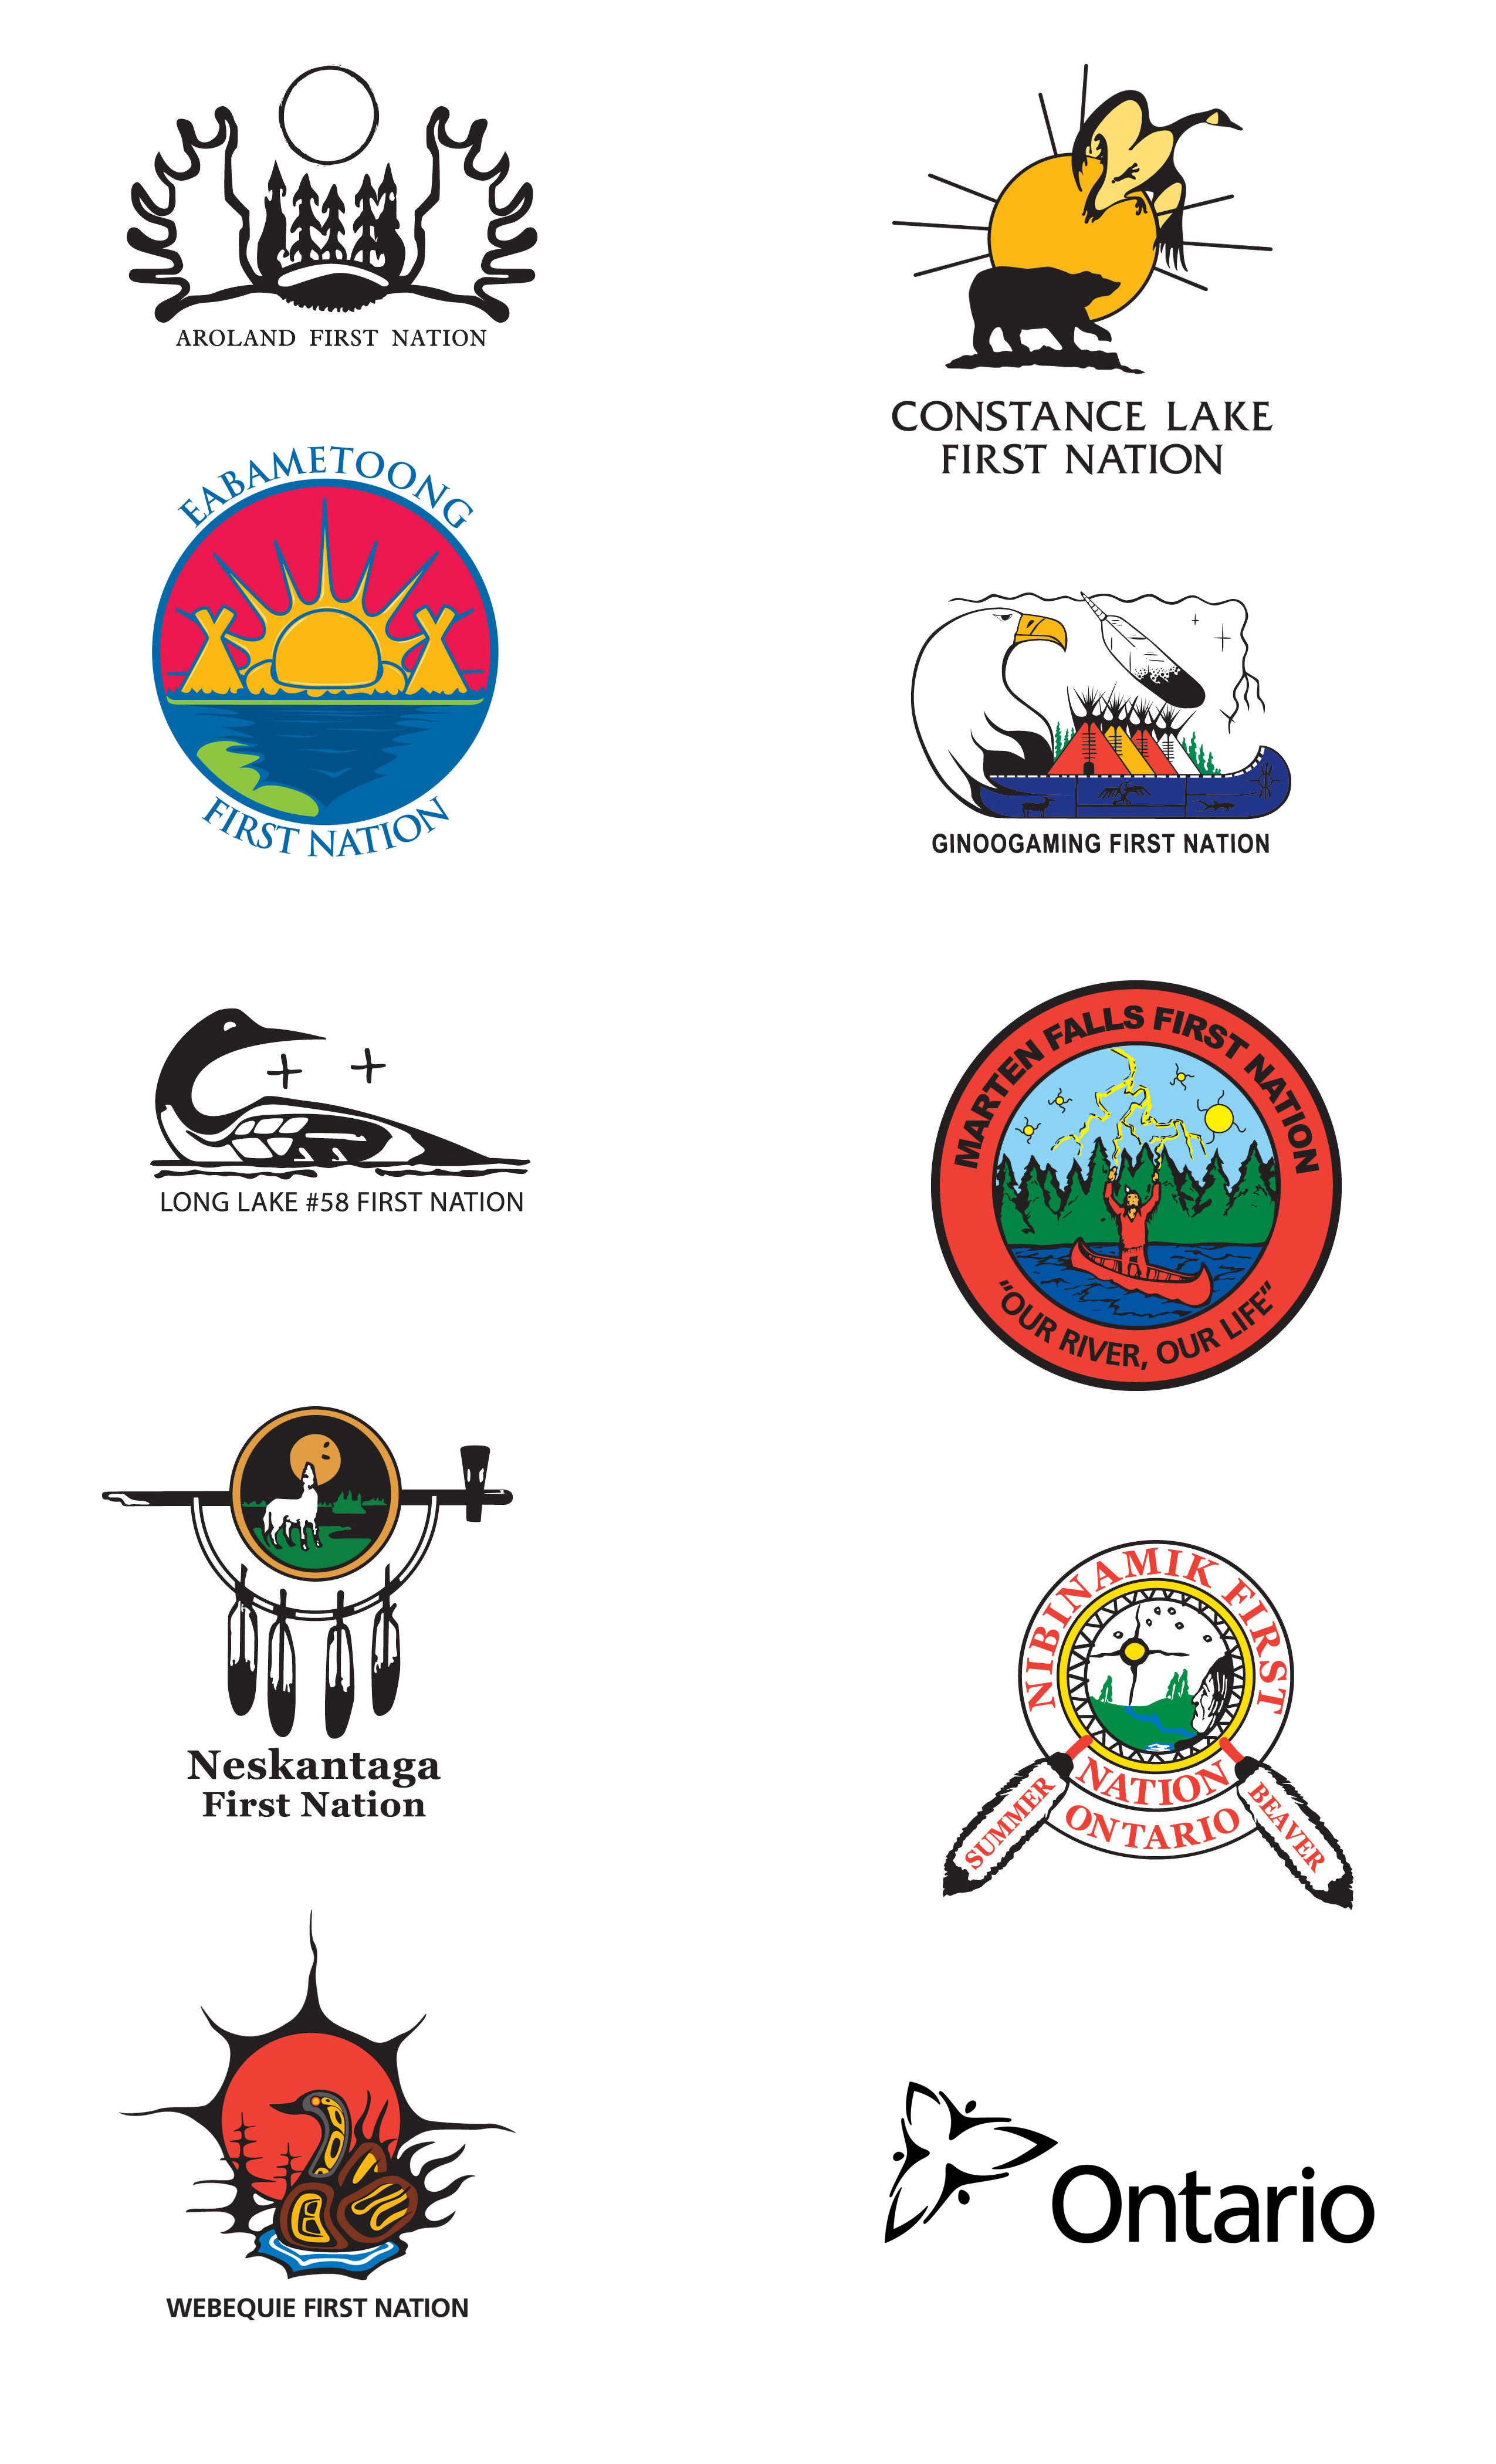 Logos for: Aroland First Nation, Constance Lake First Nation, Eabametoong First Nation, Ginoogaming First Nation, Long Lake #58 First Nation, Marten Falls First Nation, Neskantaga First Nation, Nibinamik First Nation, Webequie First Nation, Province of Ontario.